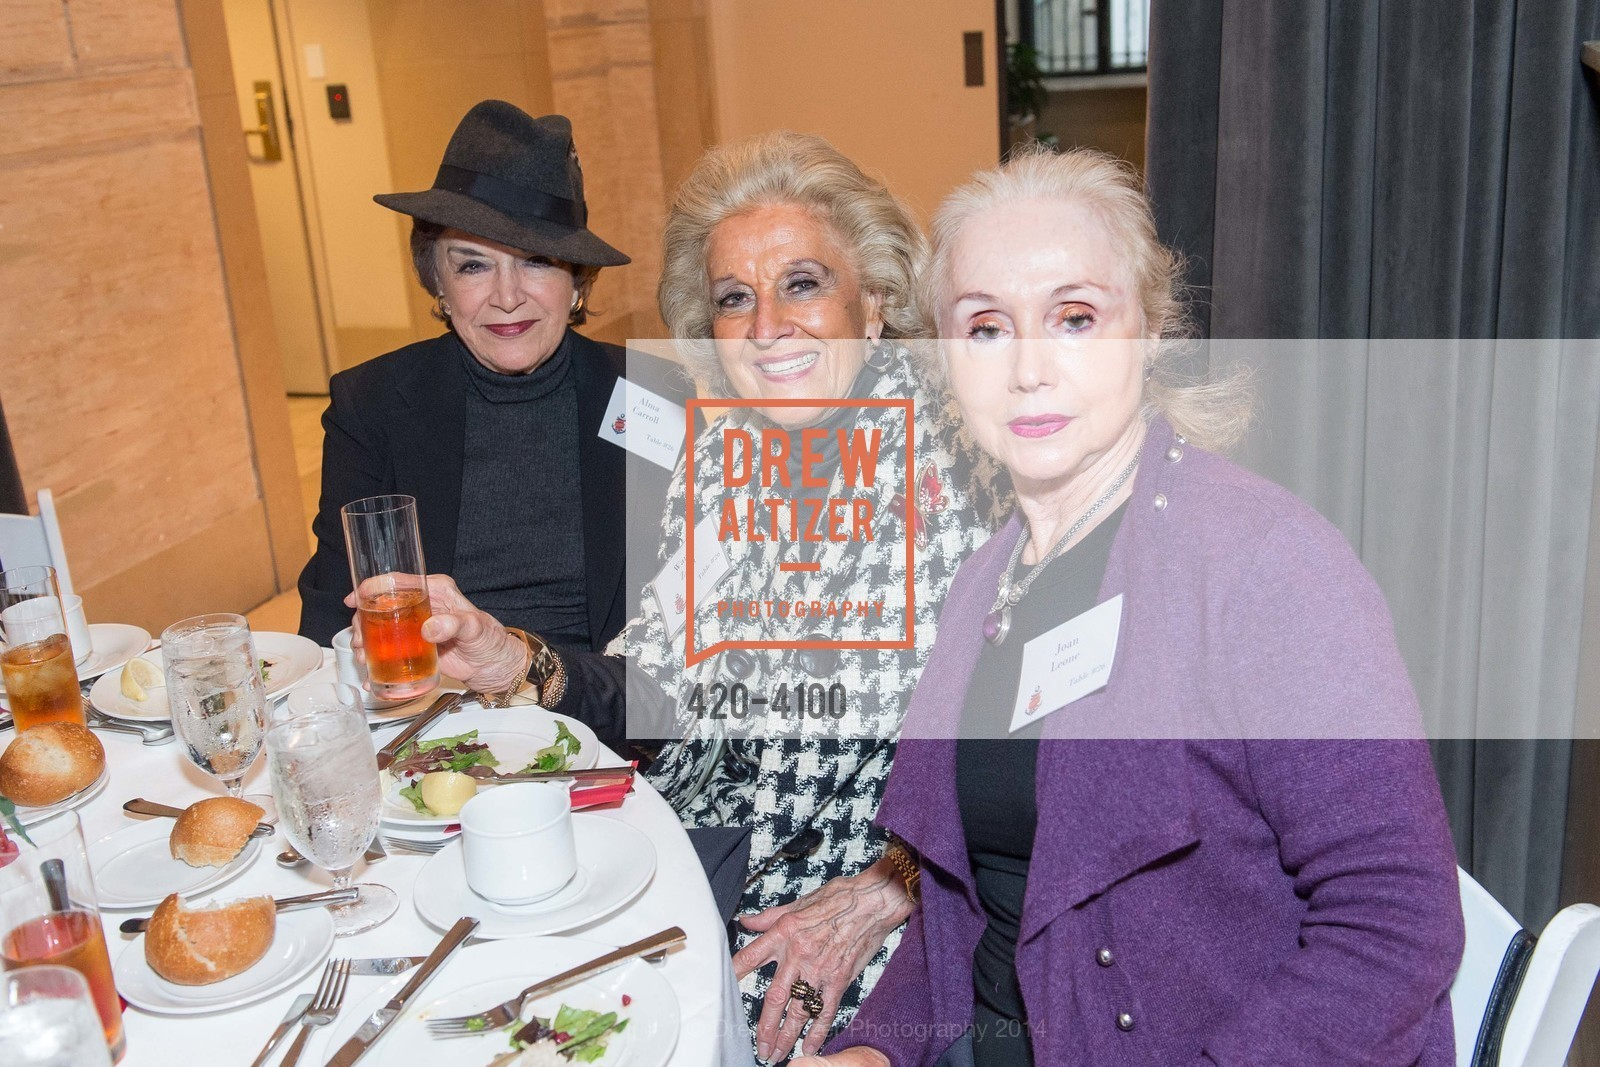 Alma Carroll, Wanda Zakri, Joan Leone, Photo #420-4100